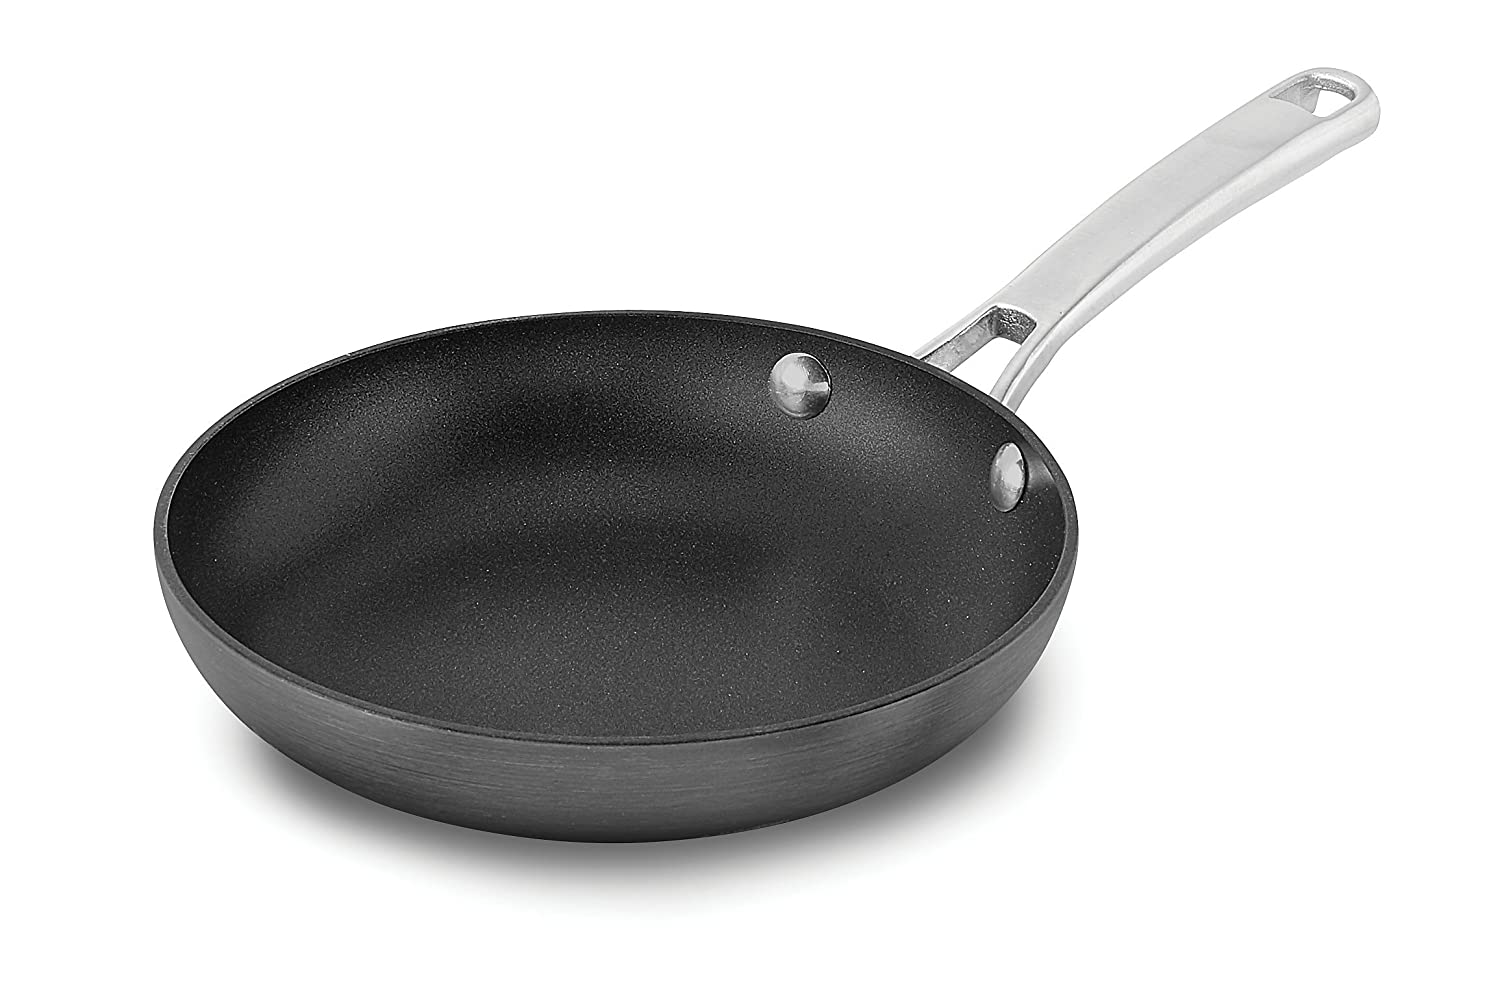 Top 10 Best Japanese Omelette Pan Reviews in 2021 9